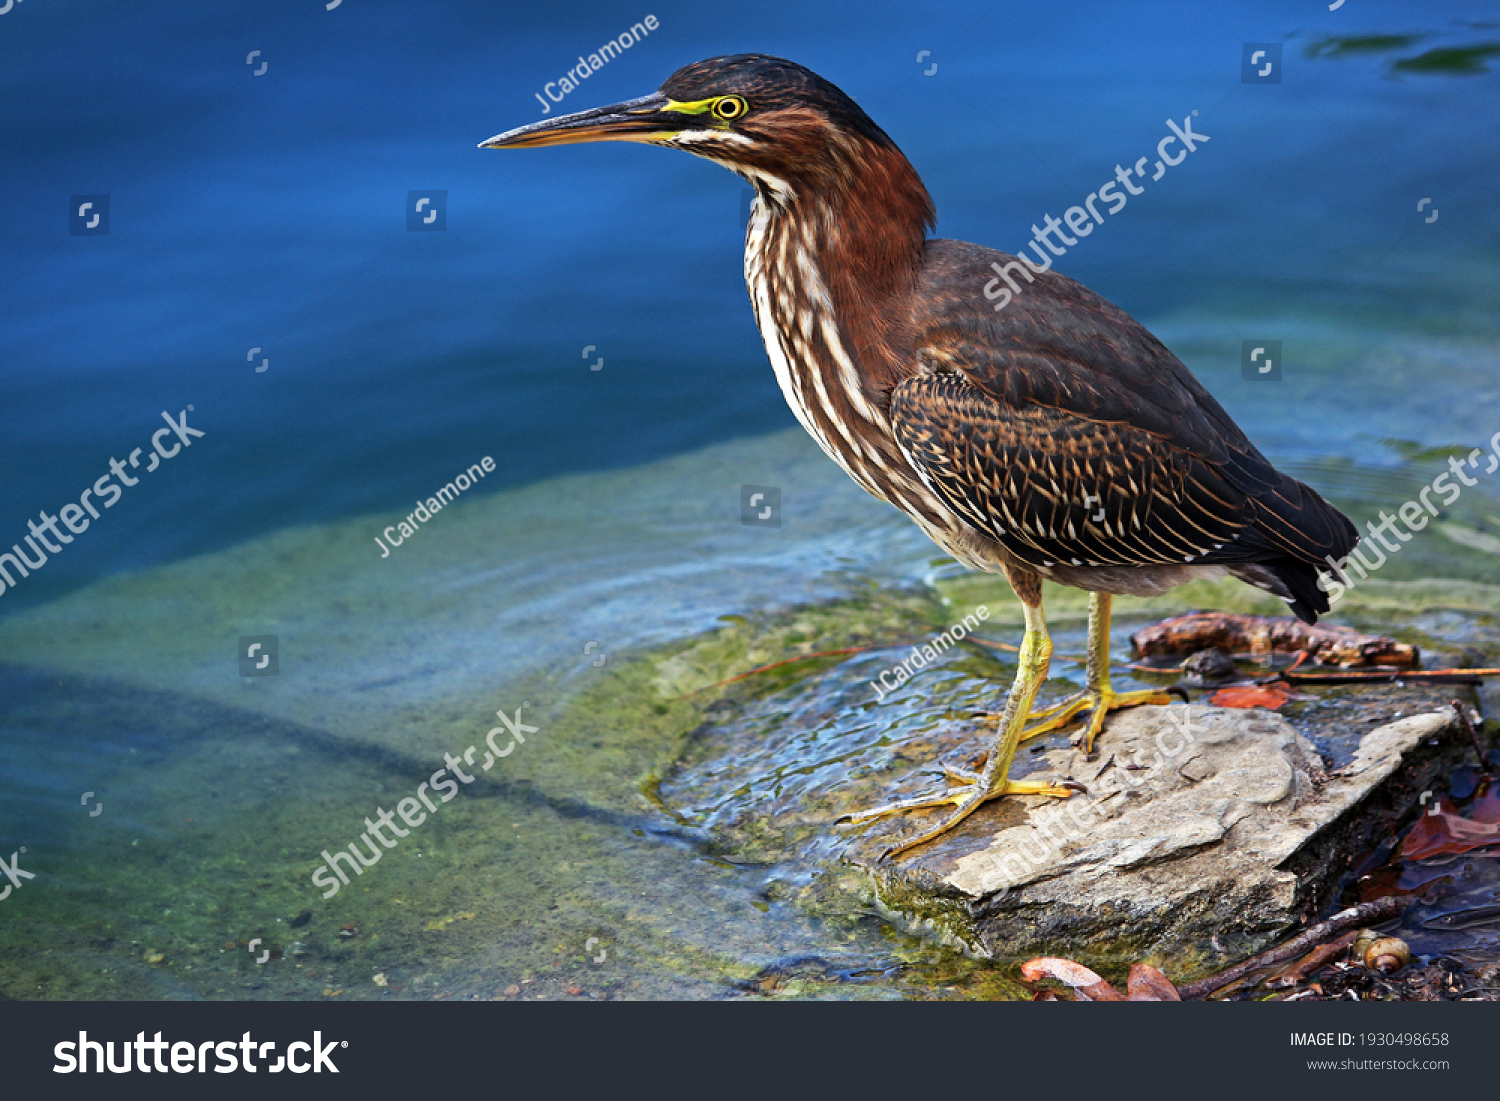 A juvenile green heron in search of a meal. #1930498658